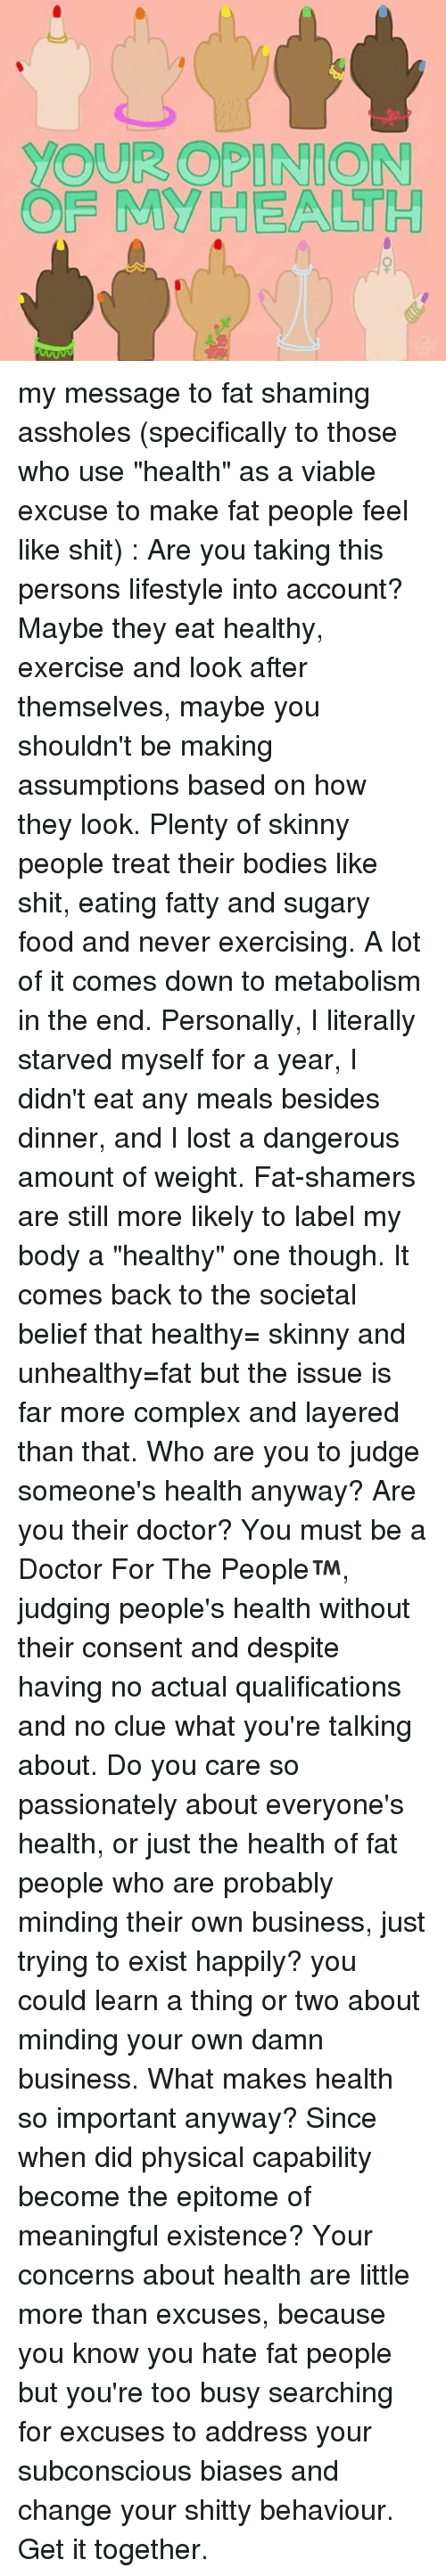 "Bodies , Complex, and Doctor: YOUR OPINION  OF MY HEALL H my message to fat shaming assholes (specifically to those who use ""health"" as a viable excuse to make fat people feel like shit) : Are you taking this persons lifestyle into account? Maybe they eat healthy, exercise and look after themselves, maybe you shouldn't be making assumptions based on how they look. Plenty of skinny people treat their bodies like shit, eating fatty and sugary food and never exercising. A lot of it comes down to metabolism in the end. Personally, I literally starved myself for a year, I didn't eat any meals besides dinner, and I lost a dangerous amount of weight. Fat-shamers are still more likely to label my body a ""healthy"" one though. It comes back to the societal belief that healthy= skinny and unhealthy=fat but the issue is far more complex and layered than that. Who are you to judge someone's health anyway? Are you their doctor? You must be a Doctor For The People™, judging people's health without their consent and despite having no actual qualifications and no clue what you're talking about. Do you care so passionately about everyone's health, or just the health of fat people who are probably minding their own business, just trying to exist happily? you could learn a thing or two about minding your own damn business. What makes health so important anyway? Since when did physical capability become the epitome of meaningful existence? Your concerns about health are little more than excuses, because you know you hate fat people but you're too busy searching for excuses to address your subconscious biases and change your shitty behaviour. Get it together."